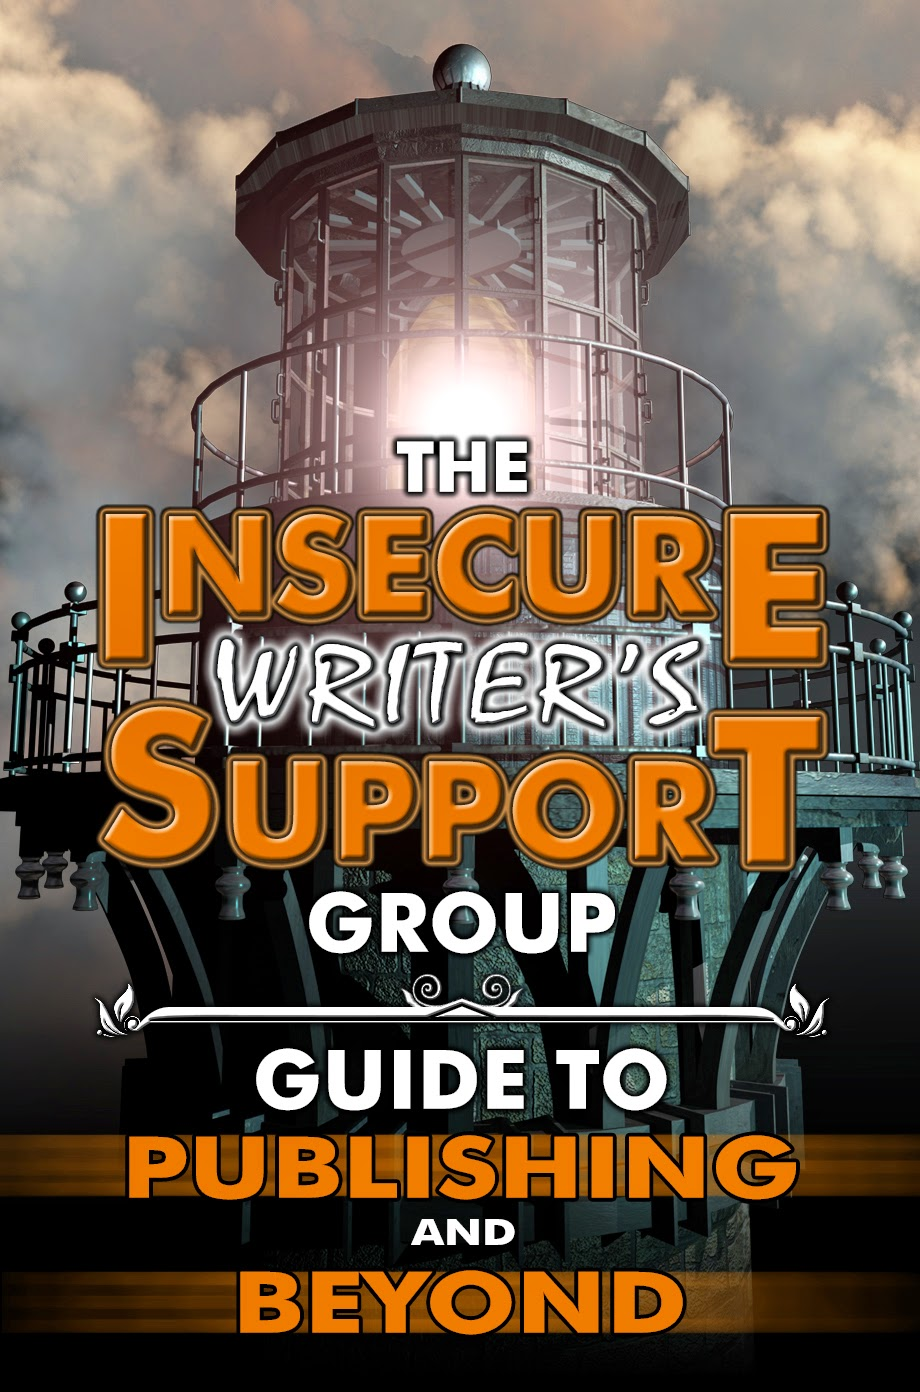 What are some offbeat style guides for fiction writers?